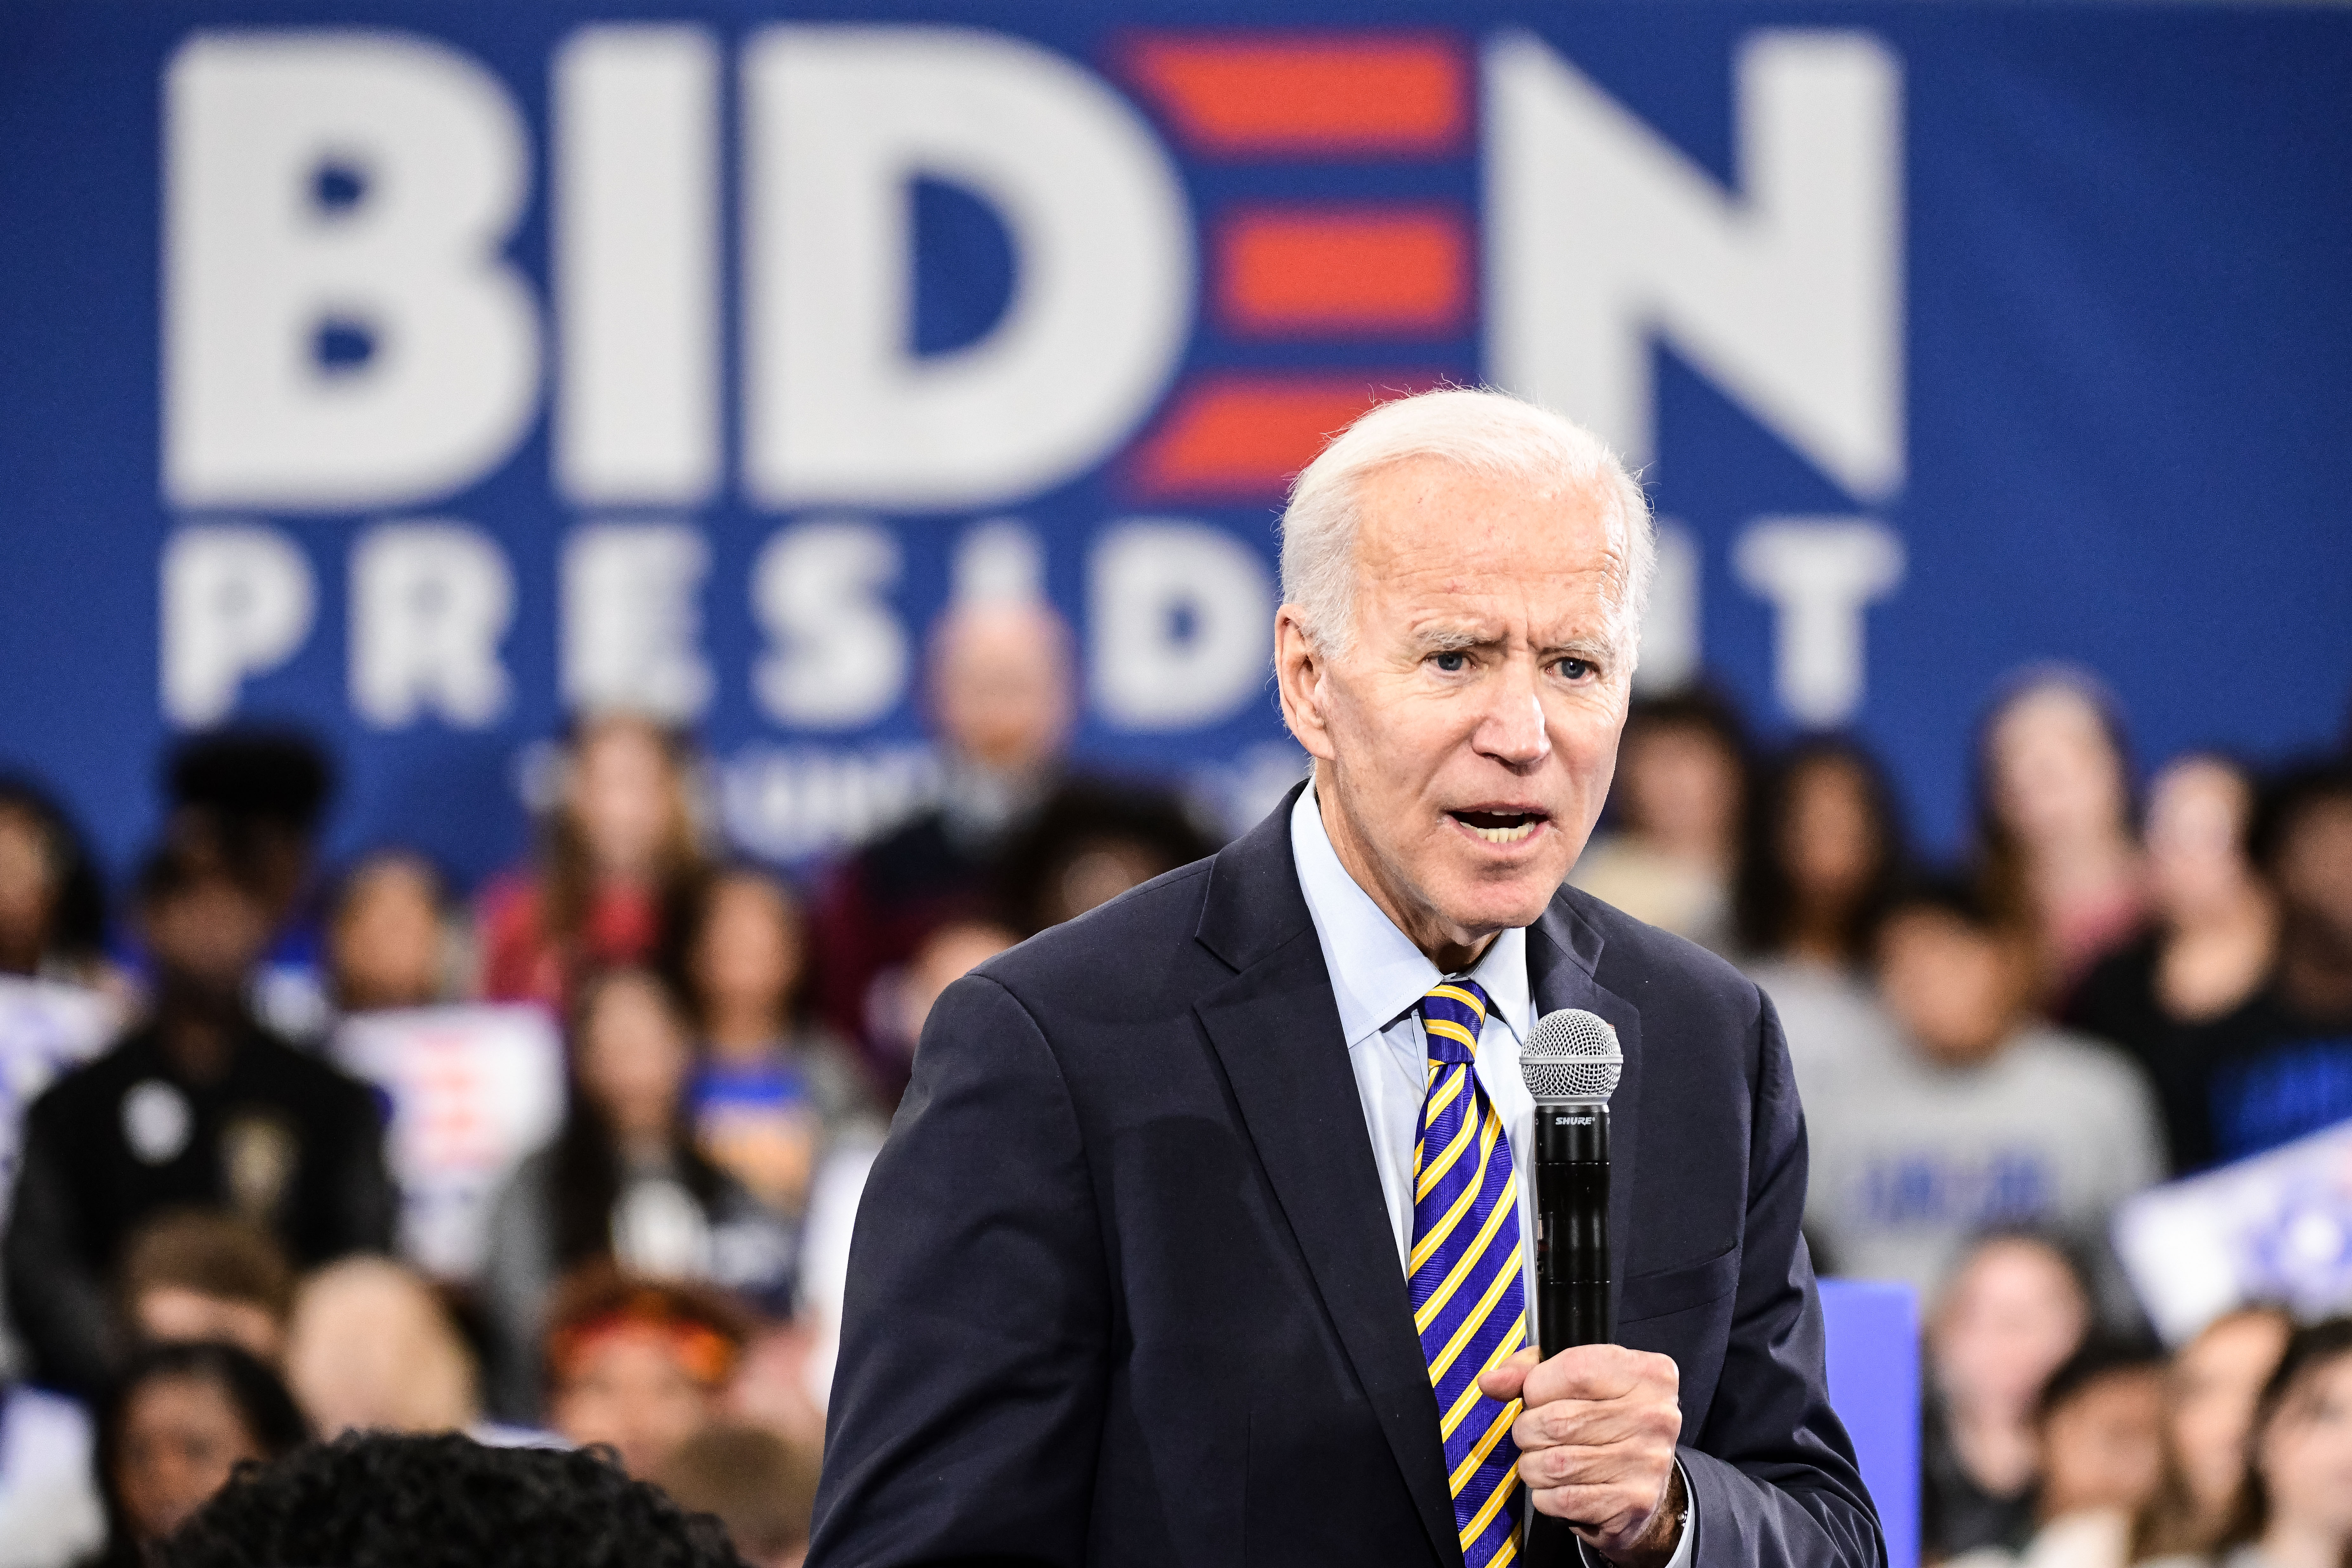 Democratic presidential candidate, former vice President Joe Biden speaks to the audience during a town hall on November 21, 2019.